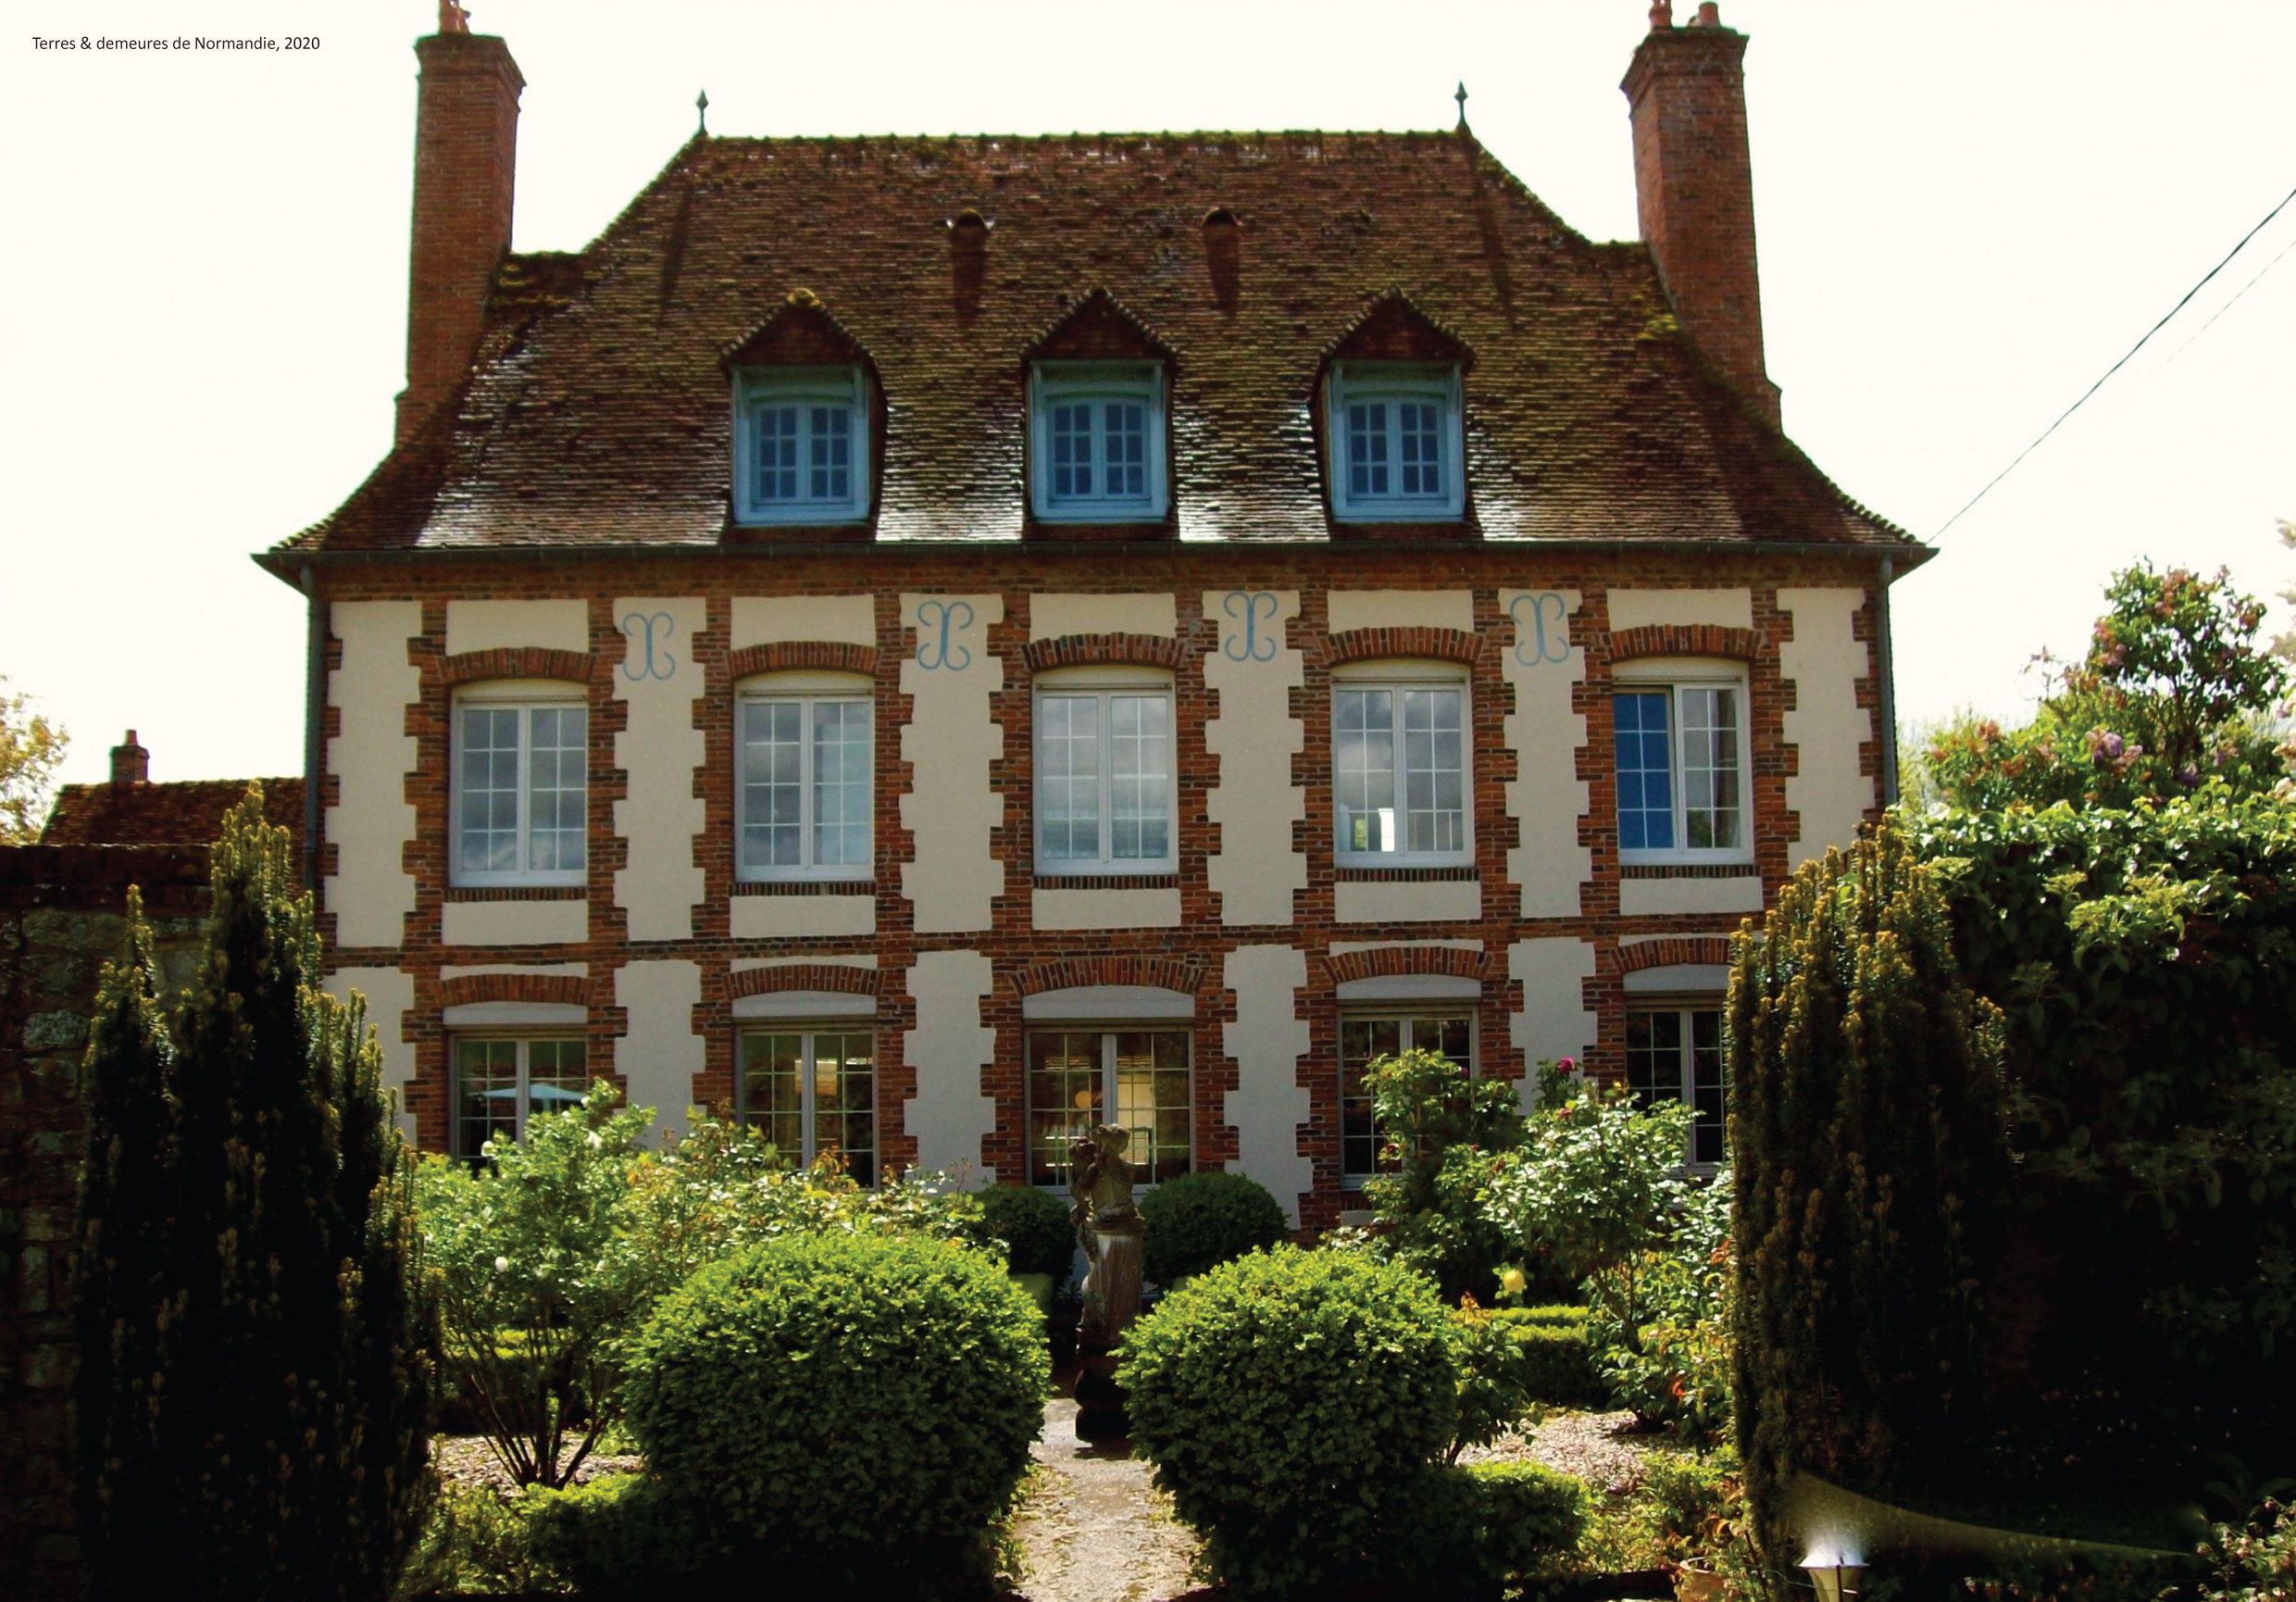 ventdouxprod 2020 France has probably more large or huge second homes than the French nobility ever had before the French revolution in 1789